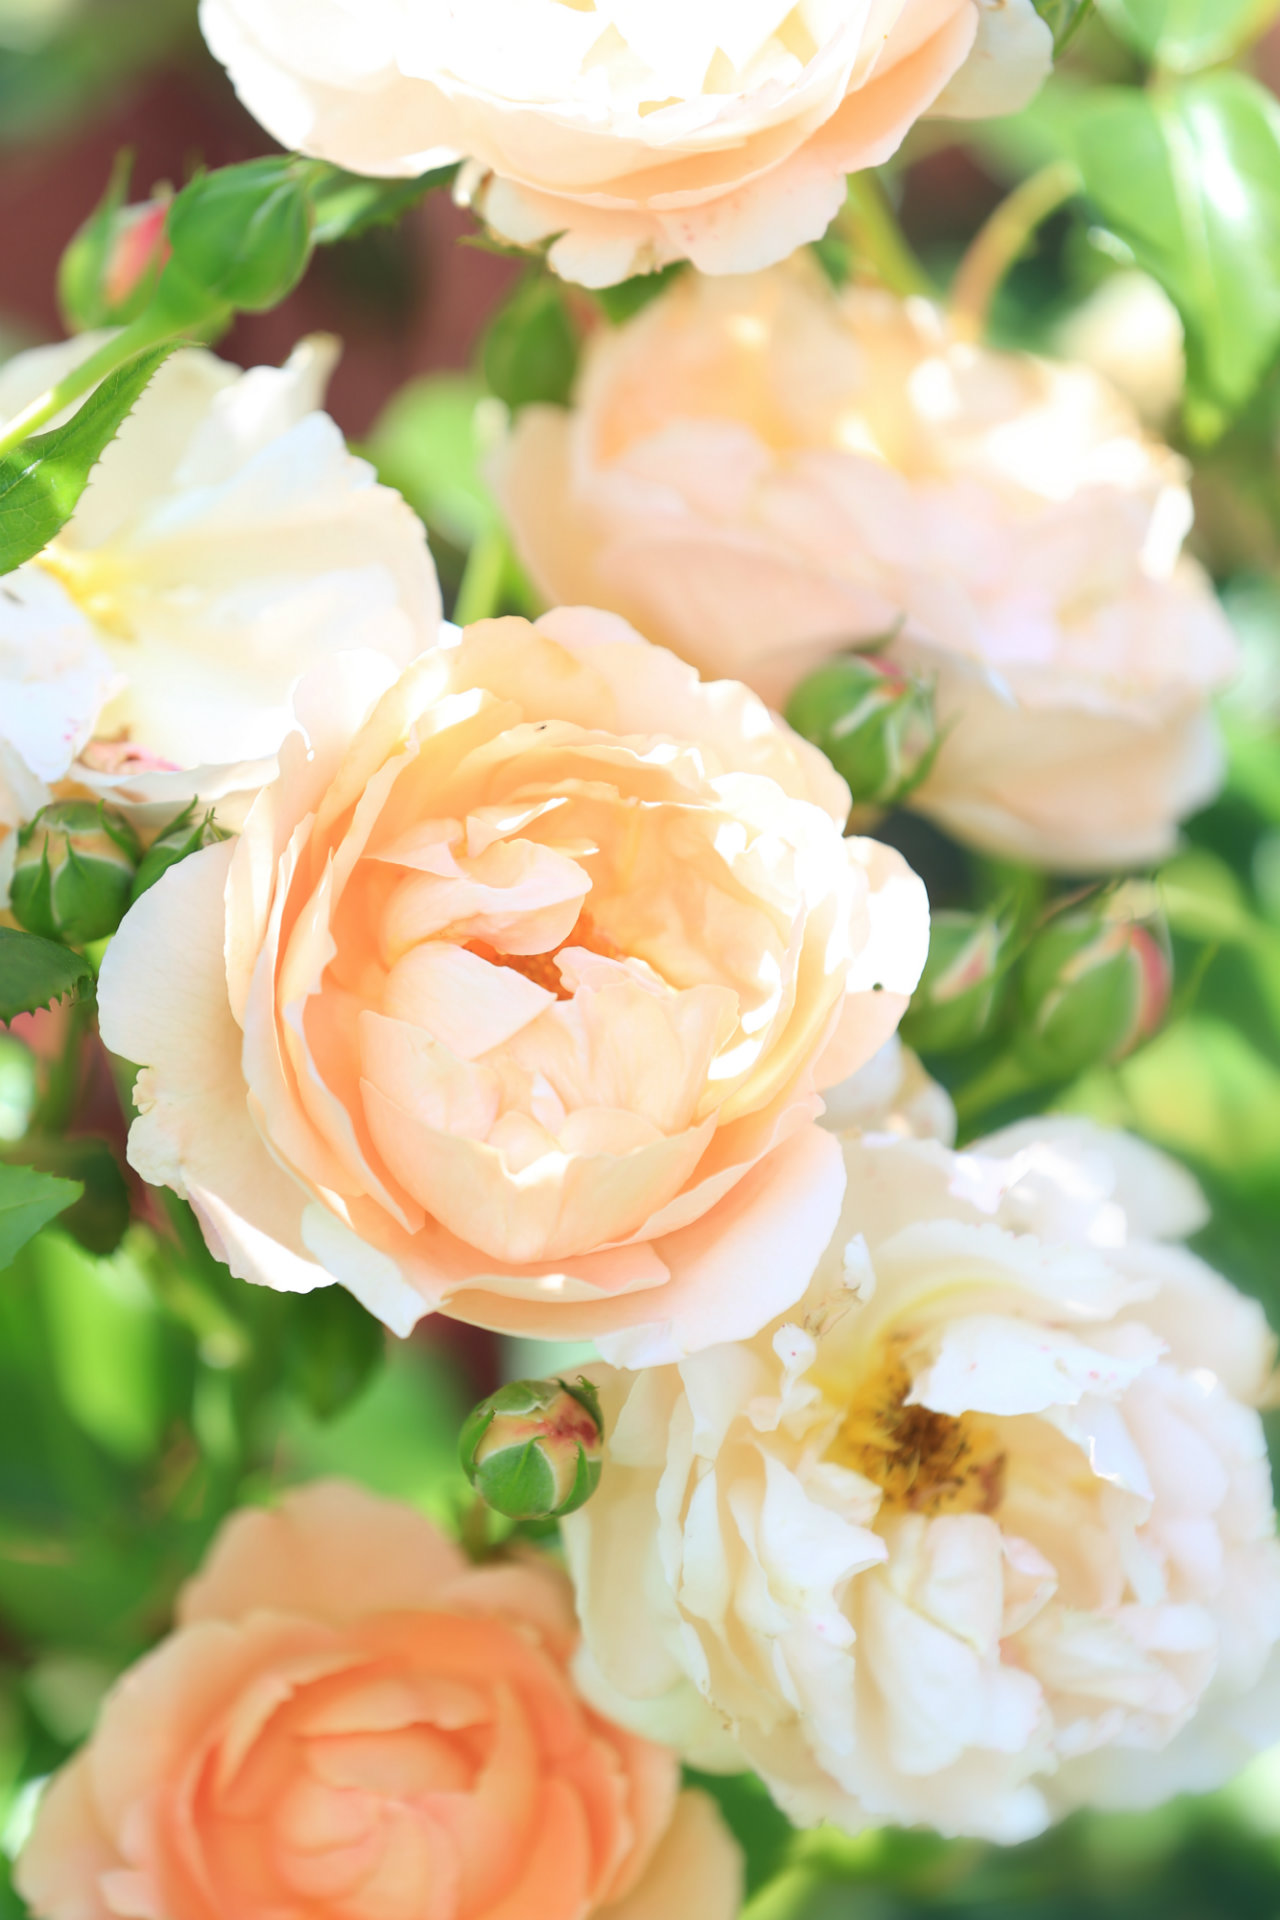 Roses in bloom in Fayette (photo)